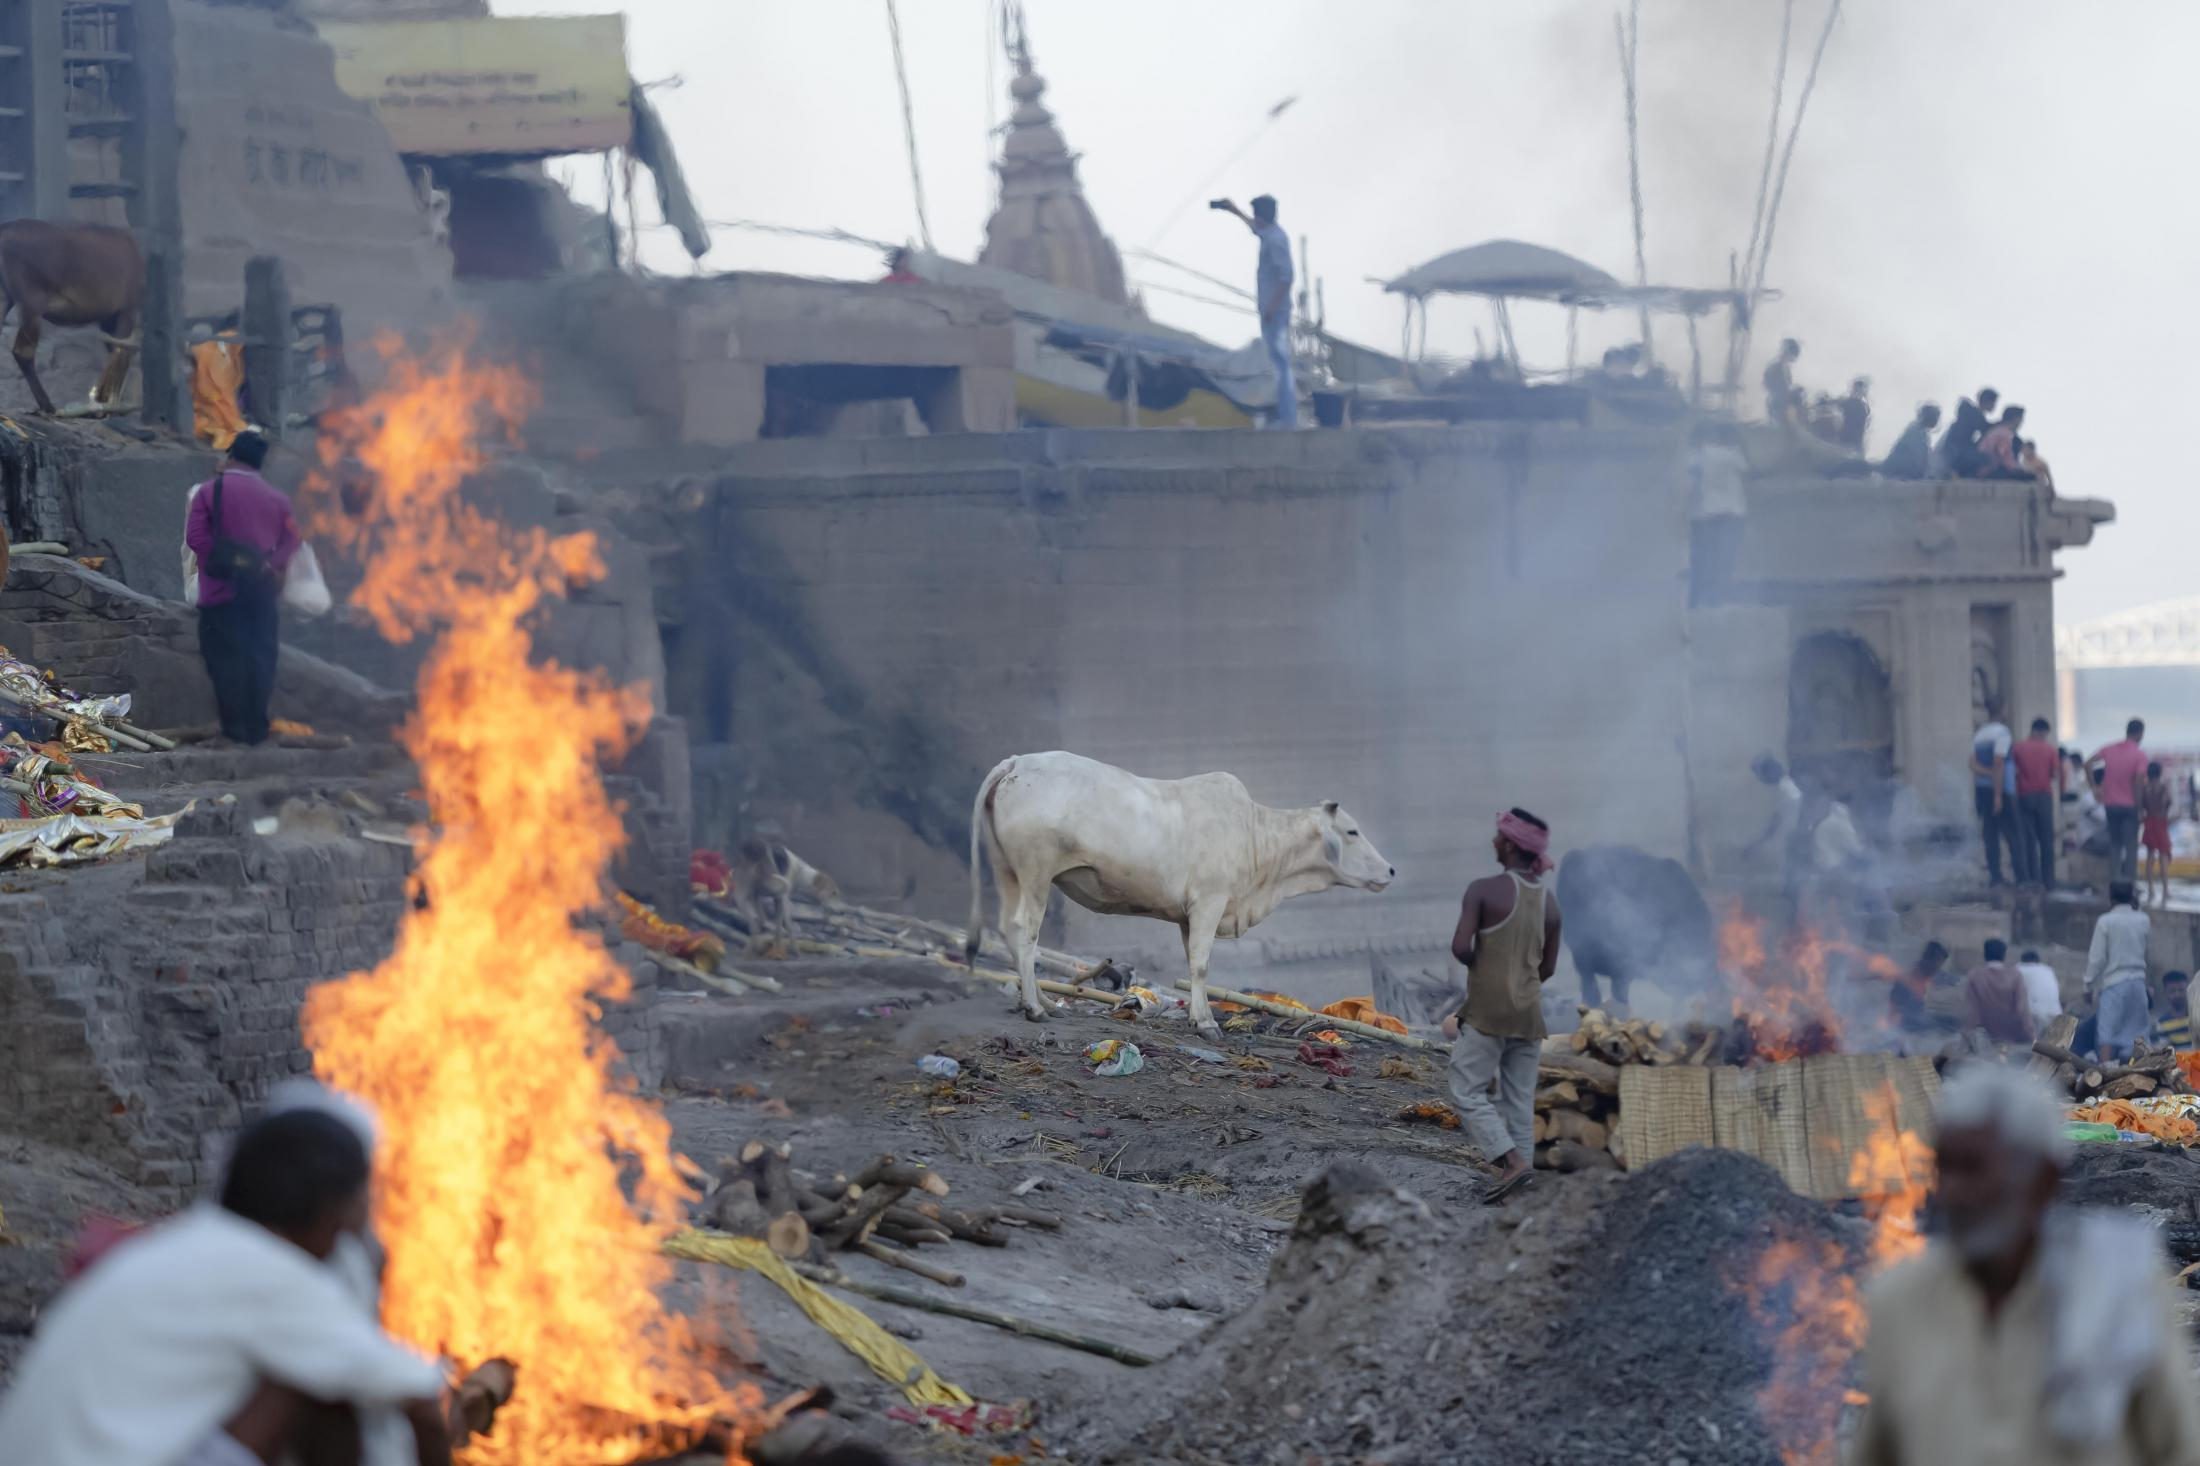 A cow stands still around cremated bodies on Manikarnika Ghat in Varanasi.